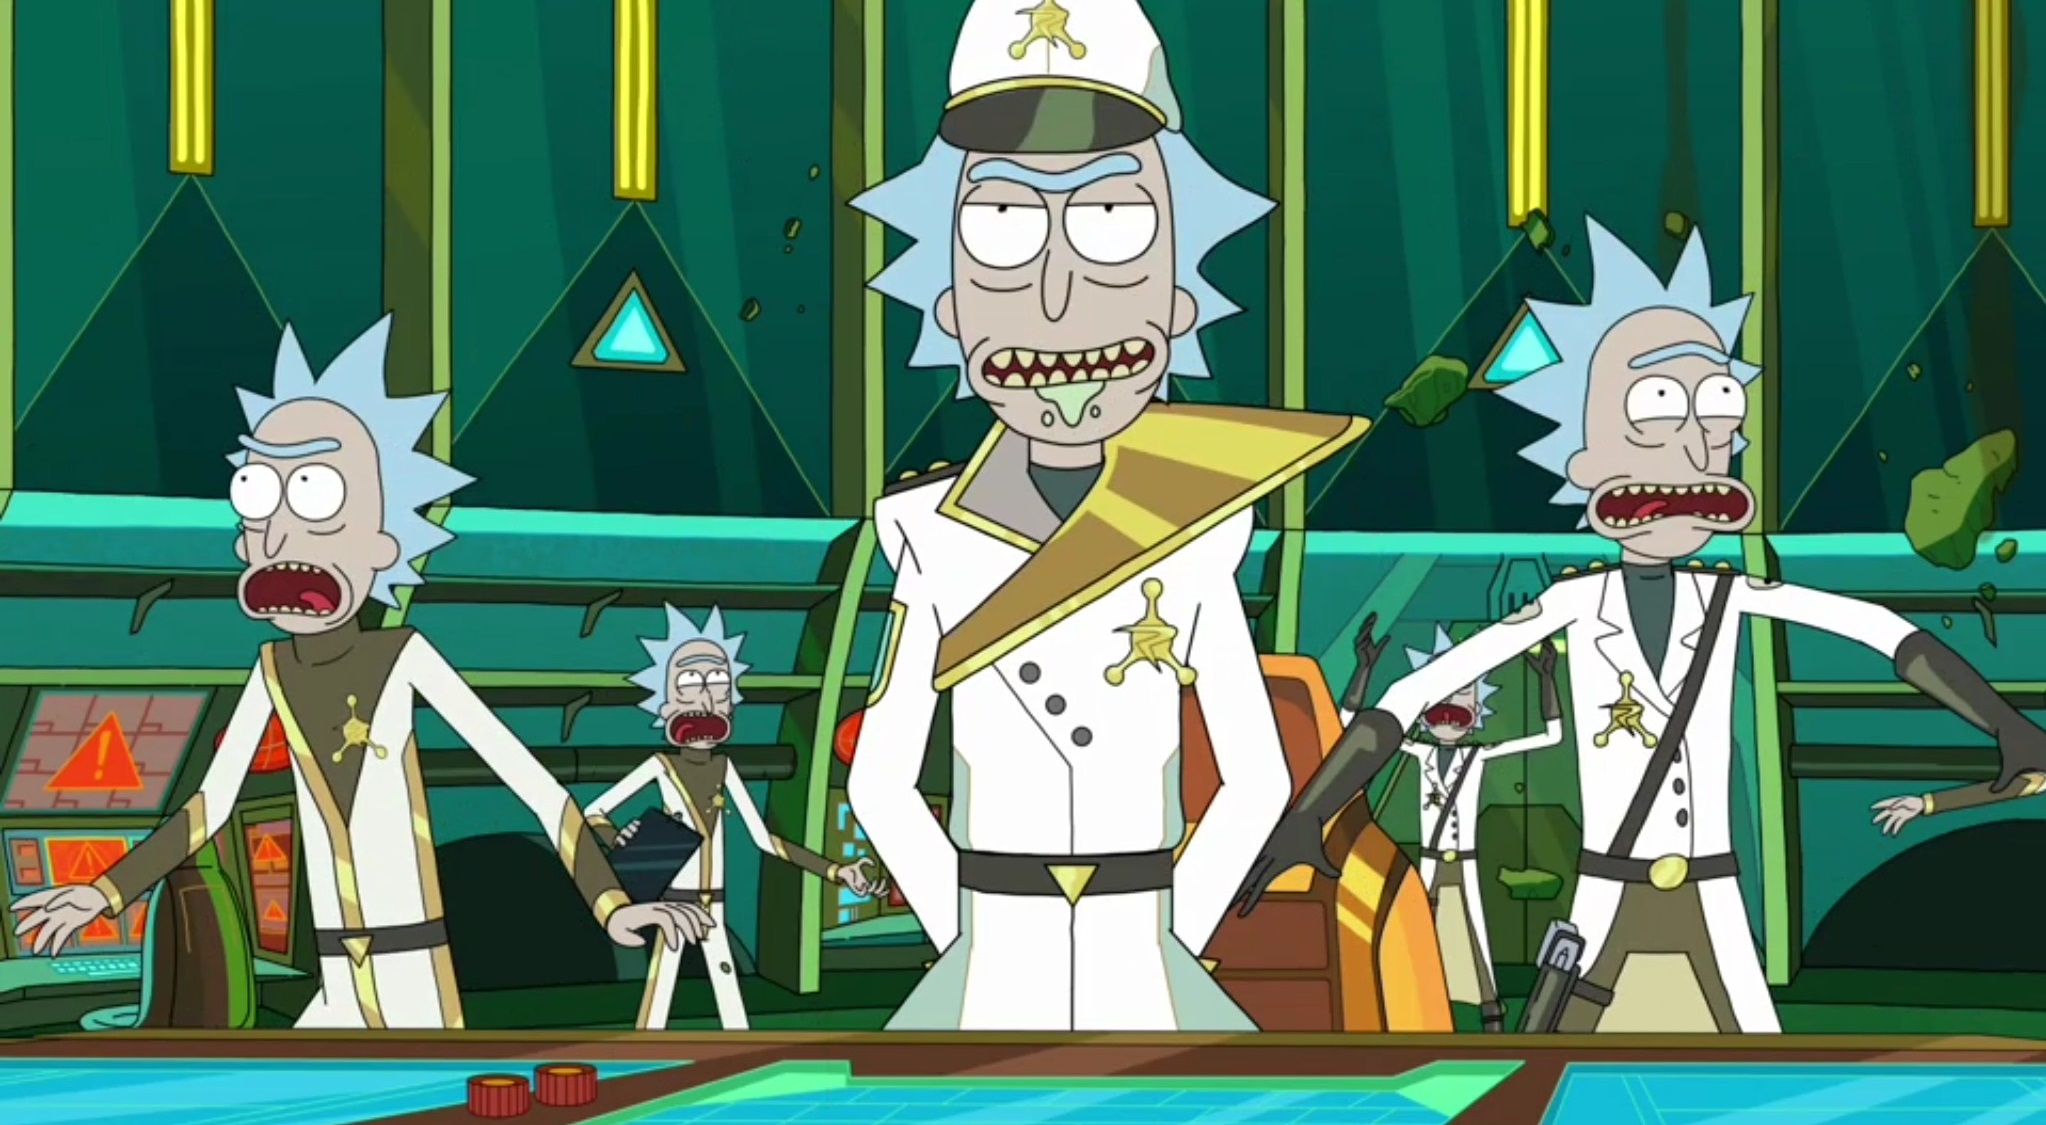 Rick And Morty Season 3 Premiere additionally Russia sells lenins body besides 4 likewise Prank Wallpapers And Screensavers also Tot School Family. on april fools day